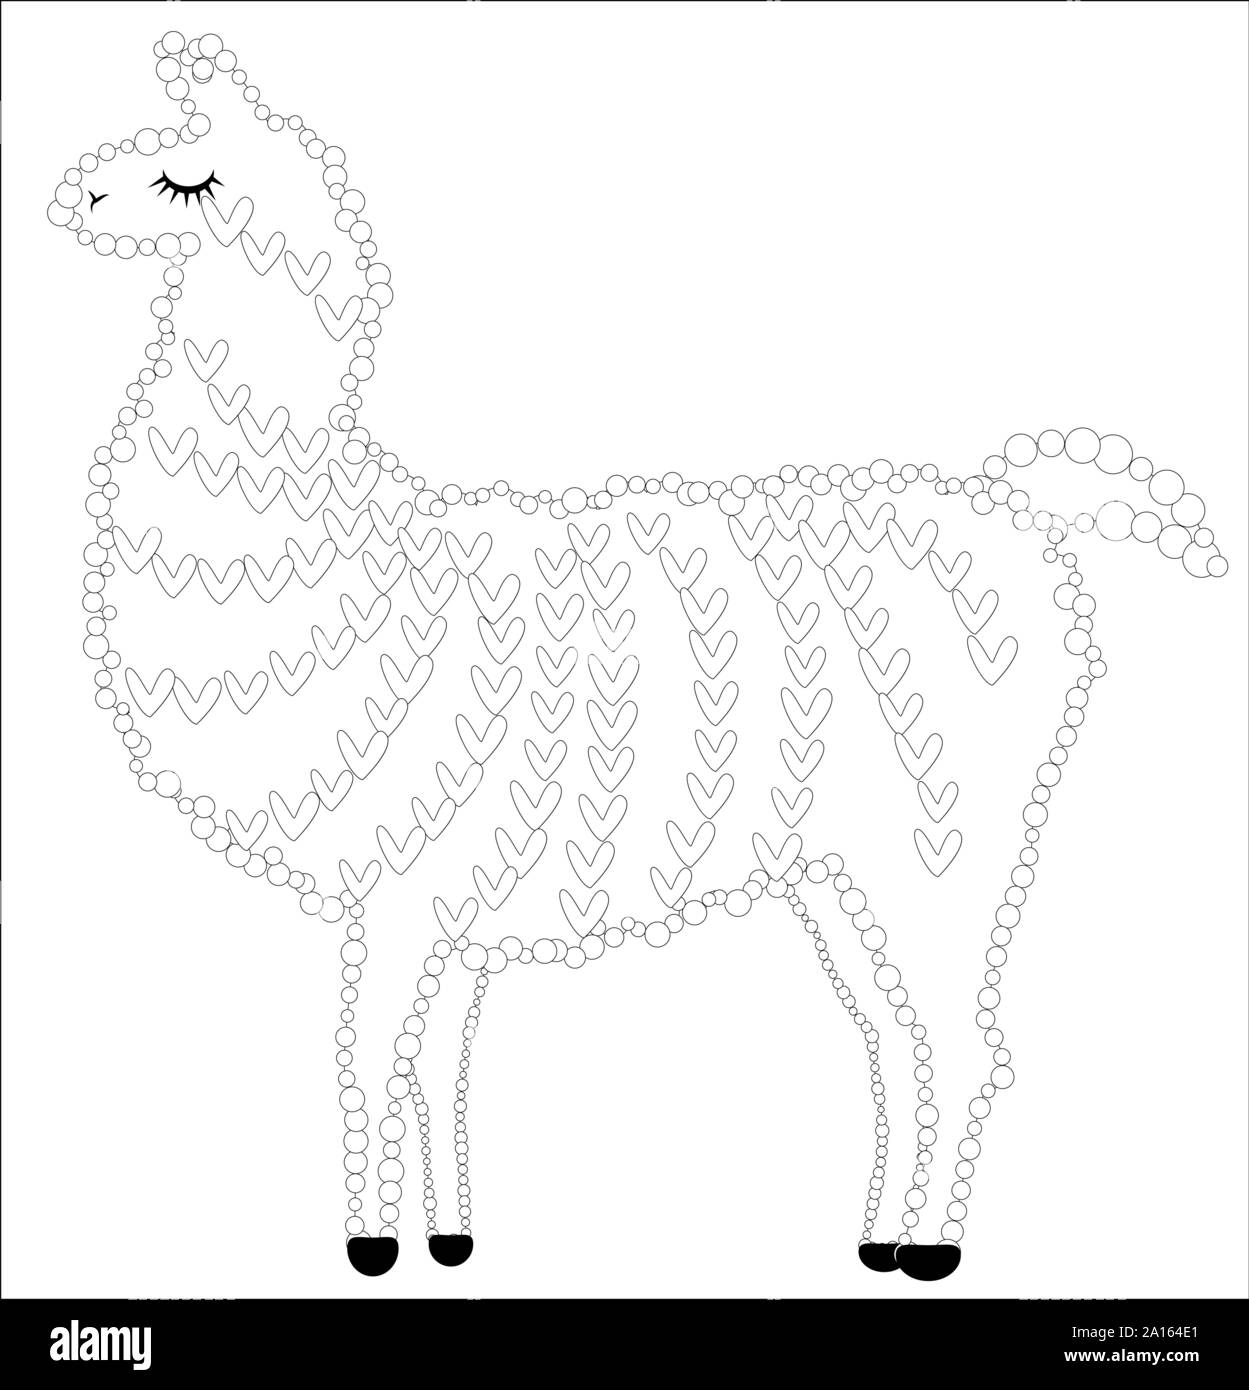 Cute Alpaca coloring page | Free Printable Coloring Pages ... | 1390x1249